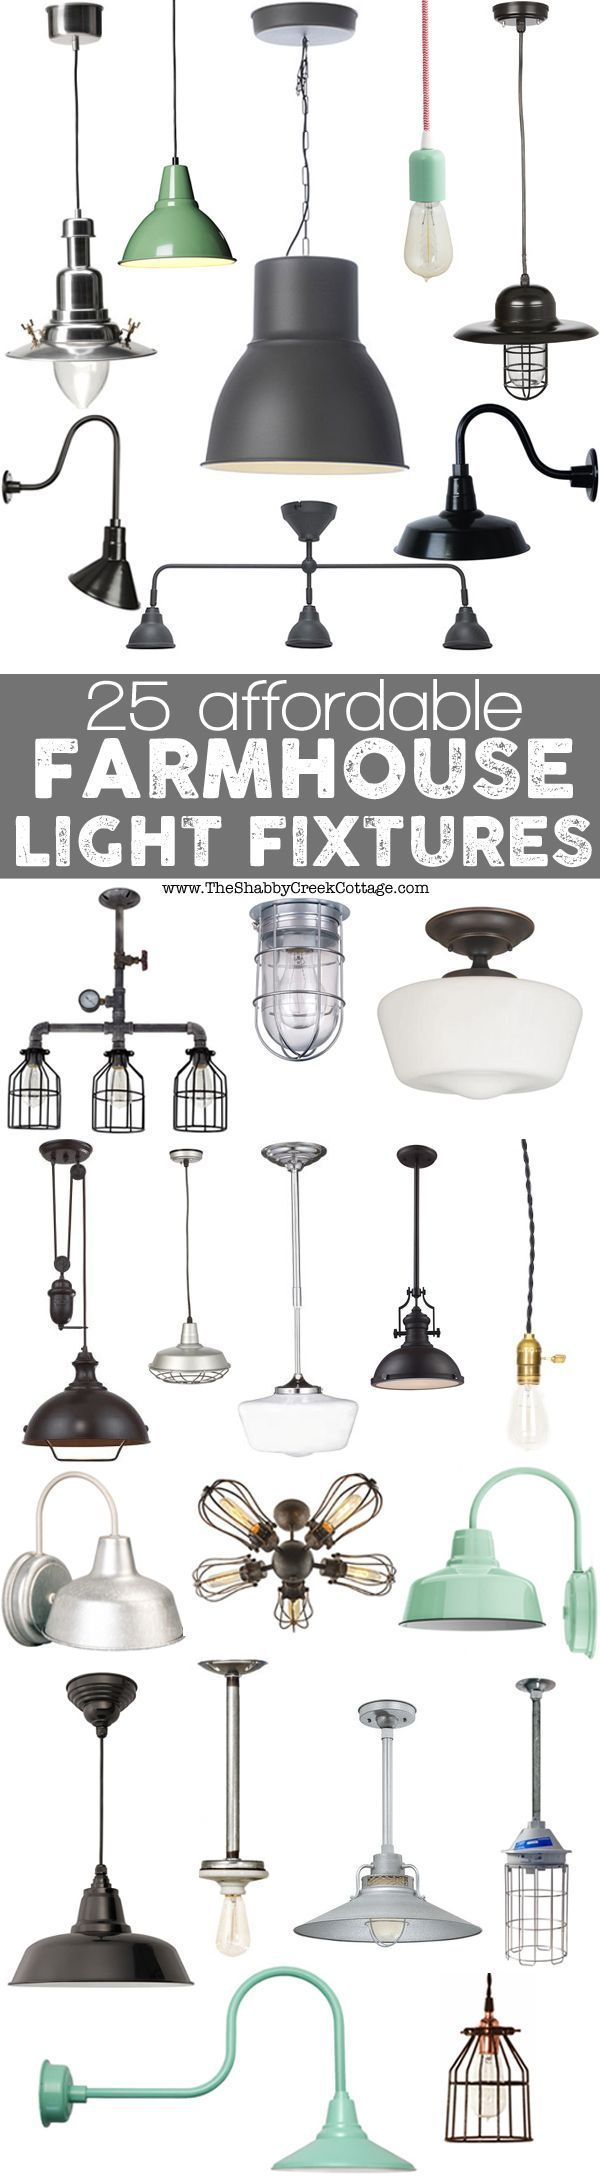 25 Best Ideas about Farmhouse Light Fixtures on Pinterest